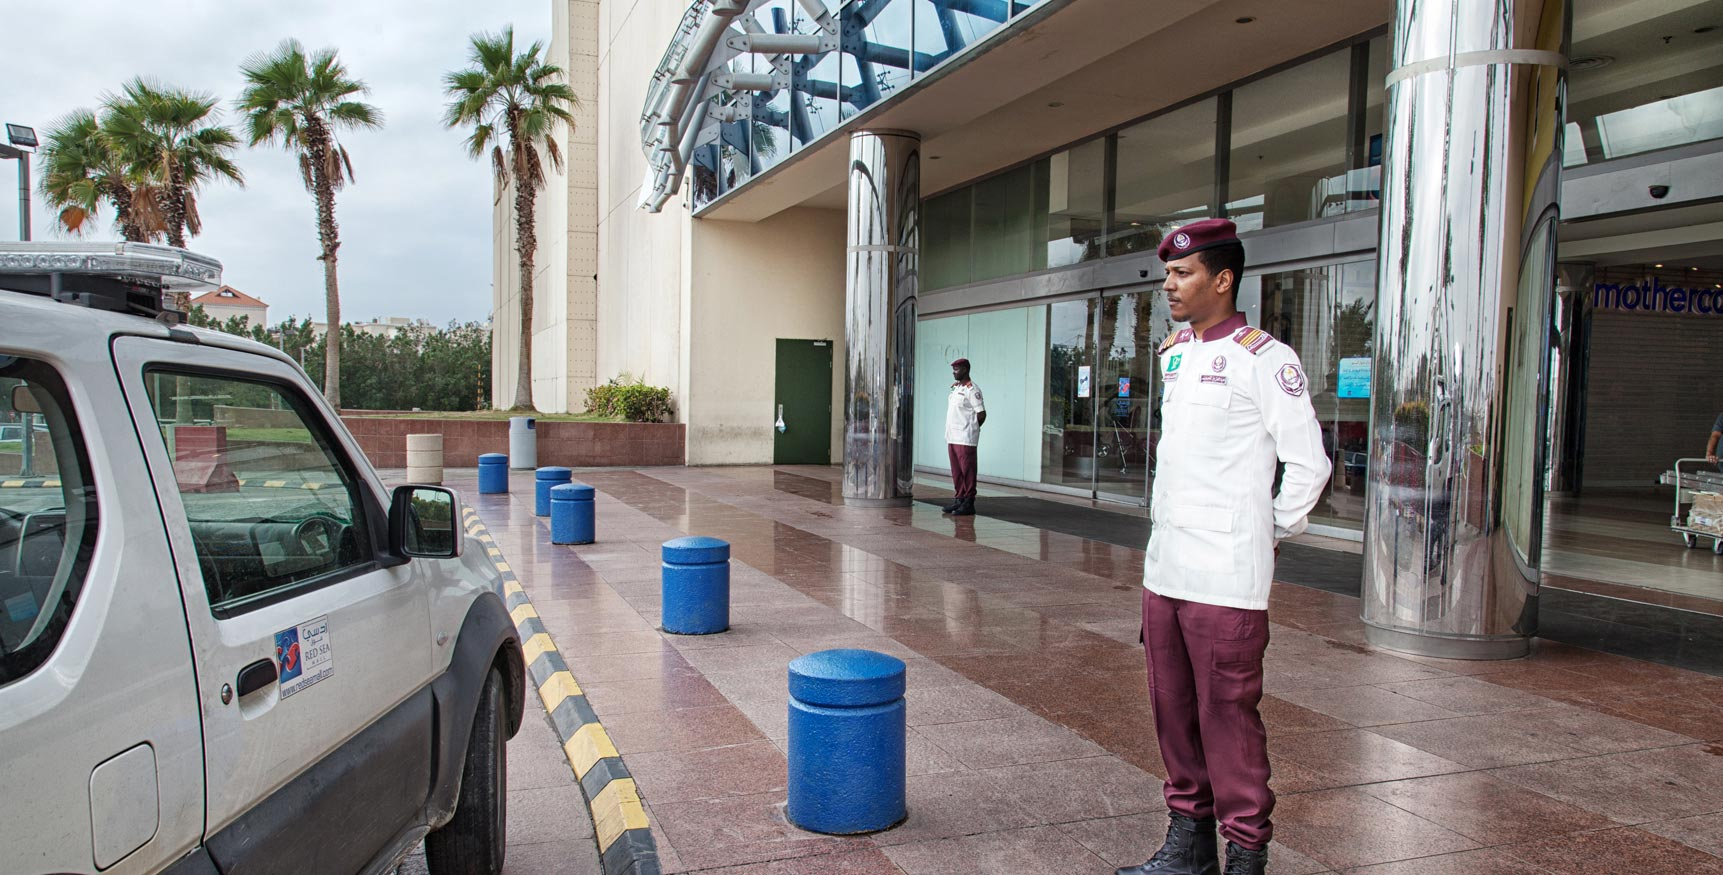 Al Mahmal Facilities Services Company